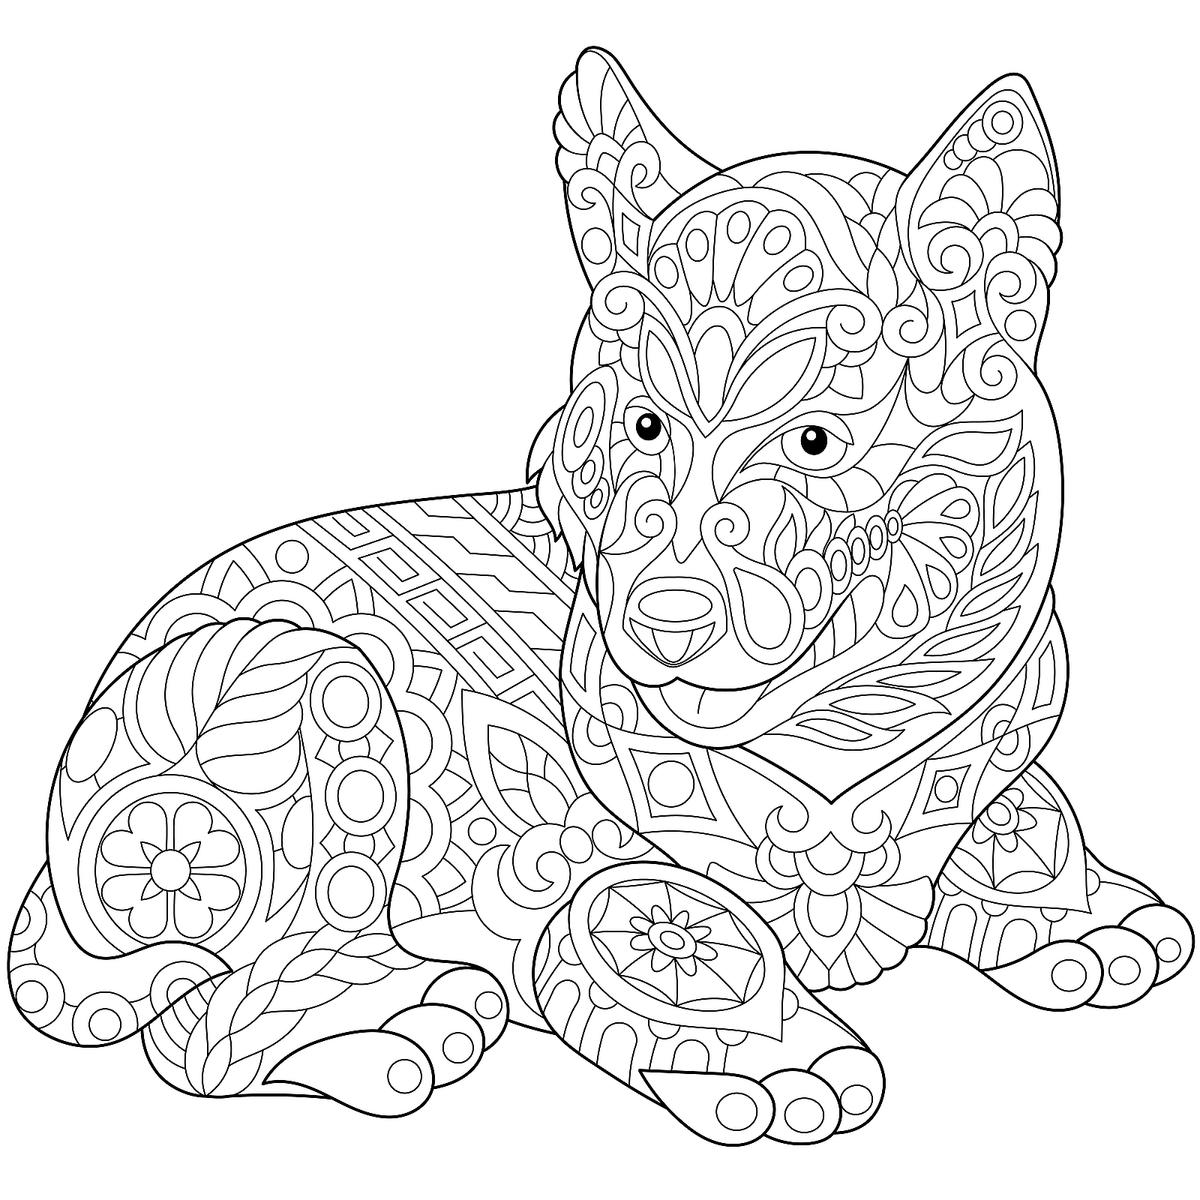 coloring pages of dogs printable dog coloring pages for kids print them online for free pages printable coloring of dogs